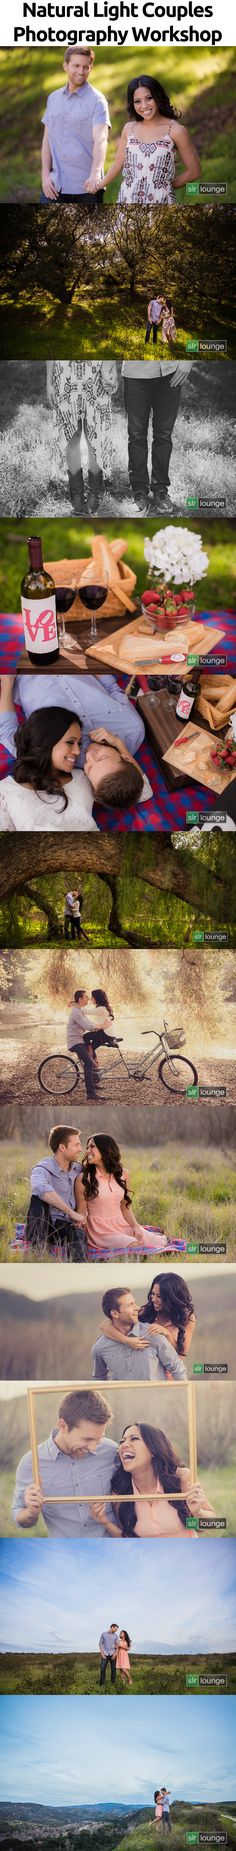 10 Tips For Taking Outdoor Portrait Photography